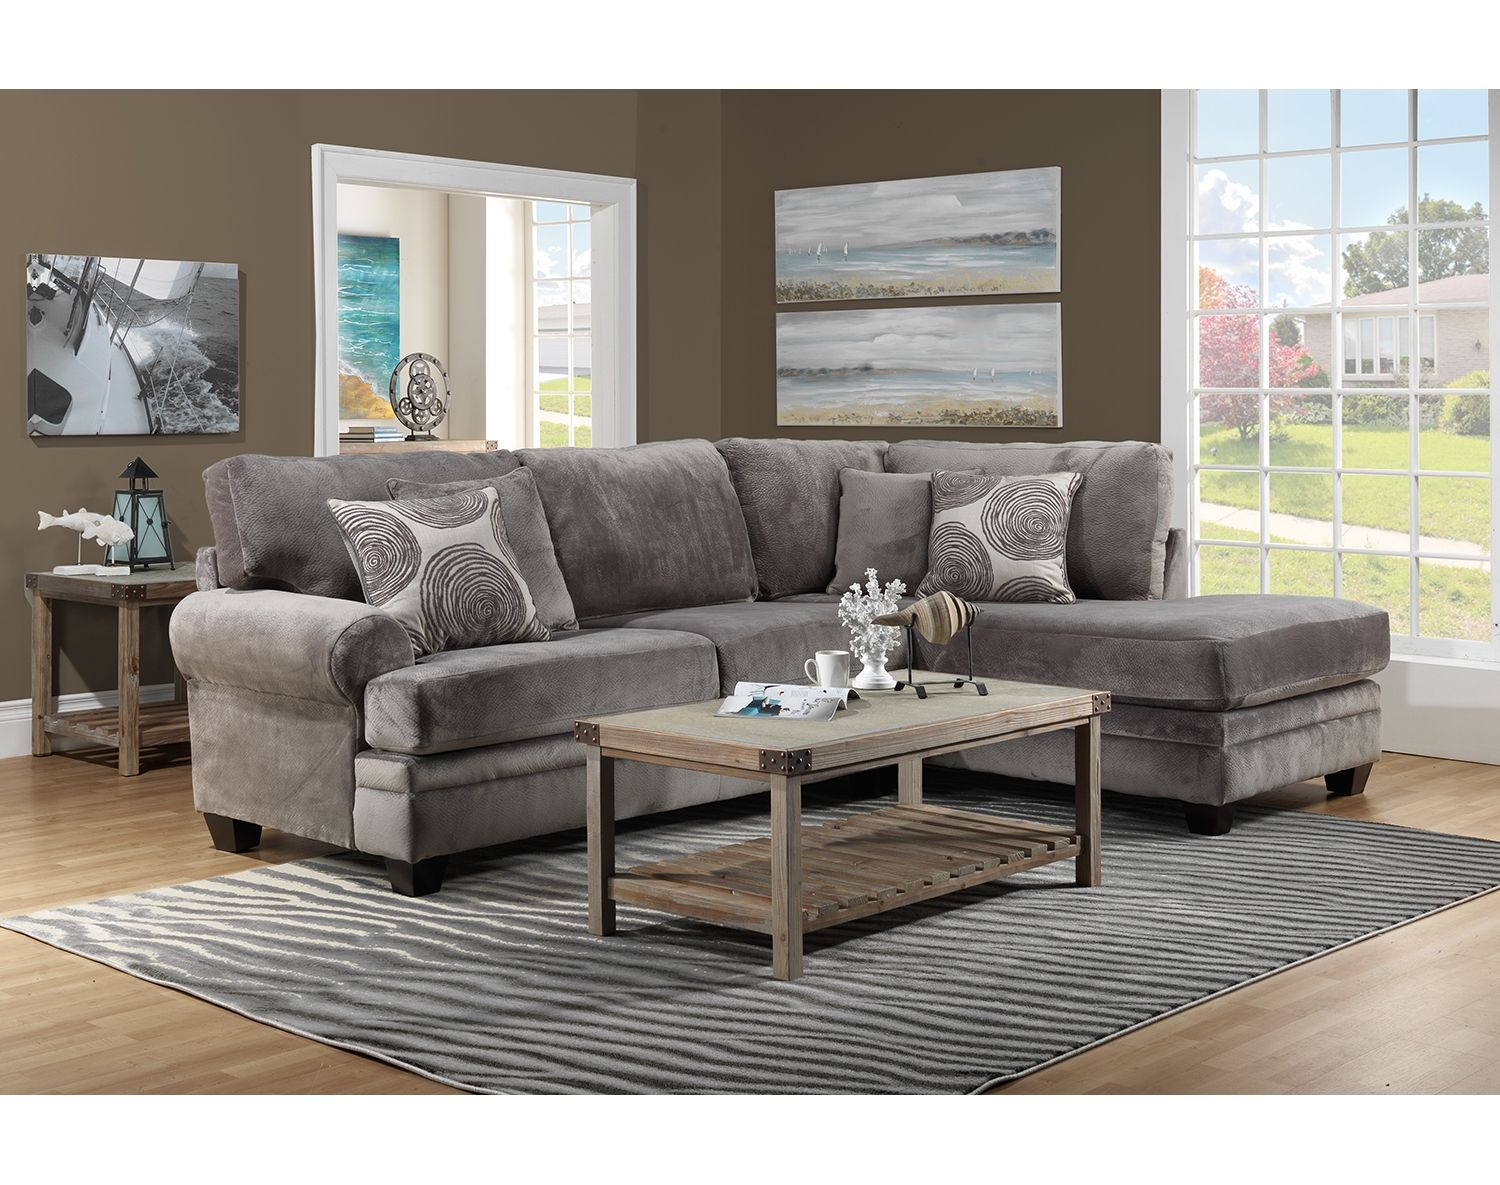 Surprising The Lana Sectional Collection Leons Furniture Living Andrewgaddart Wooden Chair Designs For Living Room Andrewgaddartcom